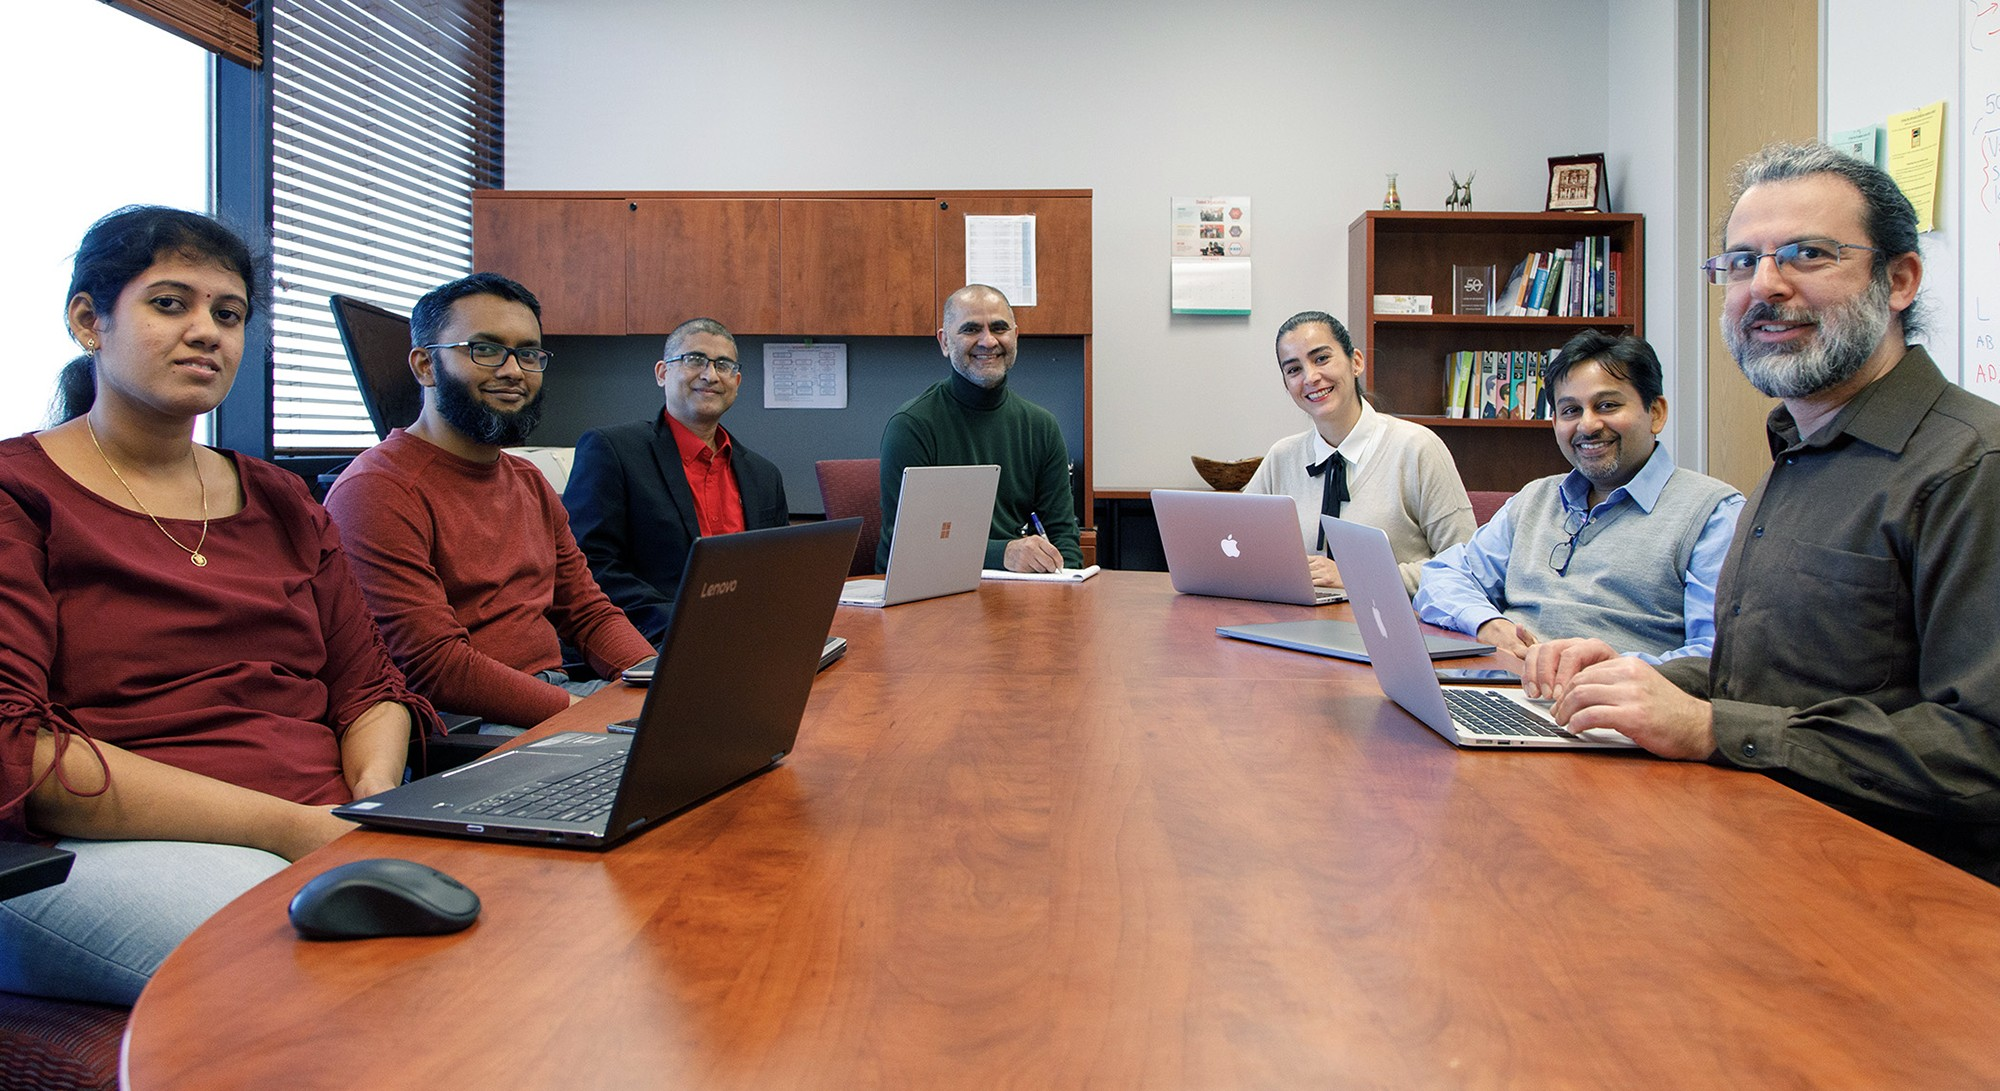 Group of seven people with laptops sitting around conference table